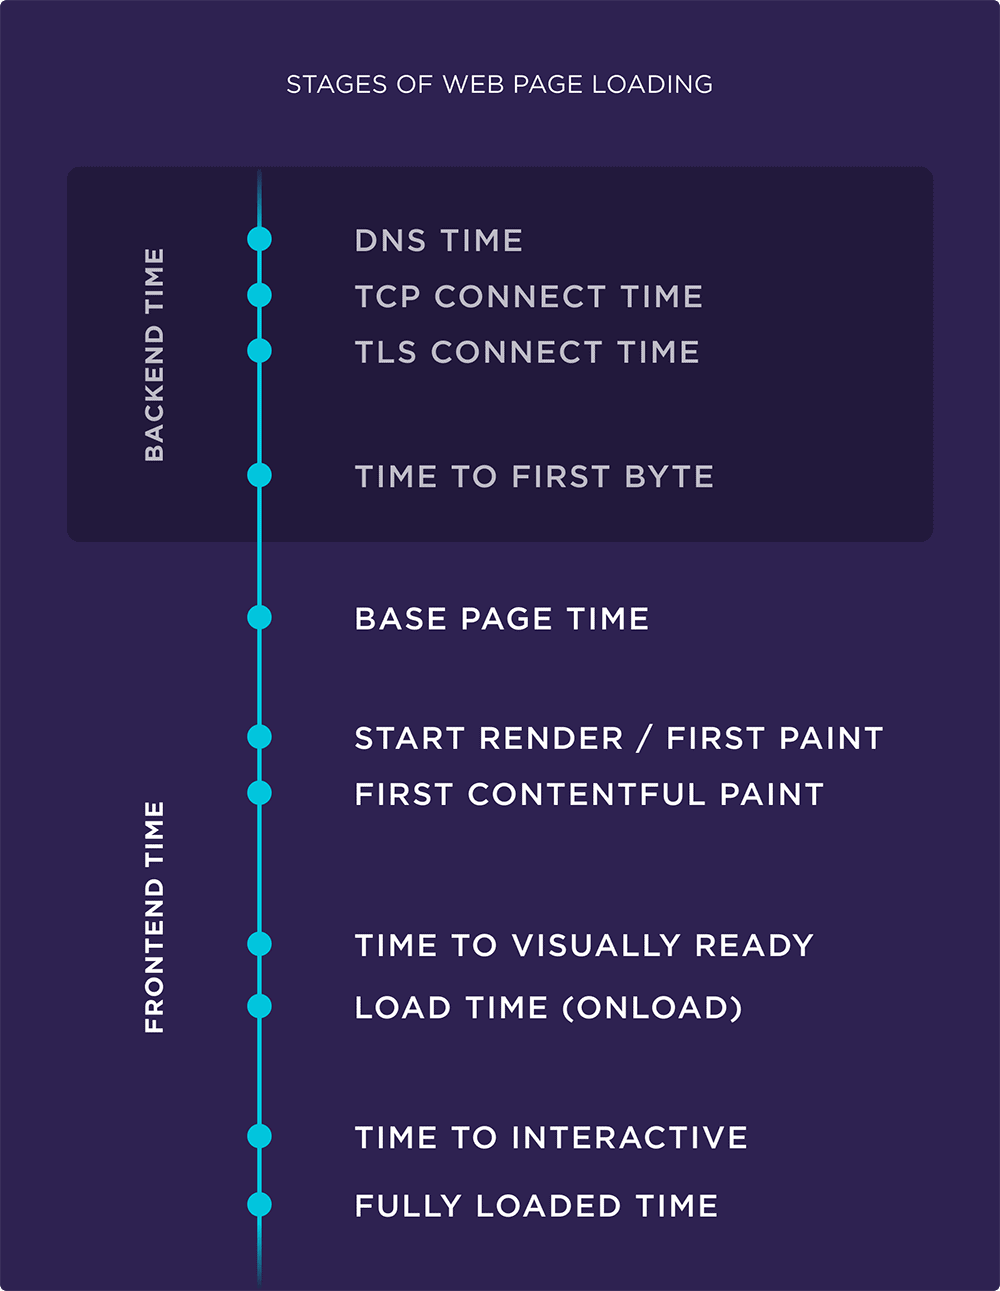 Stages of web page loading